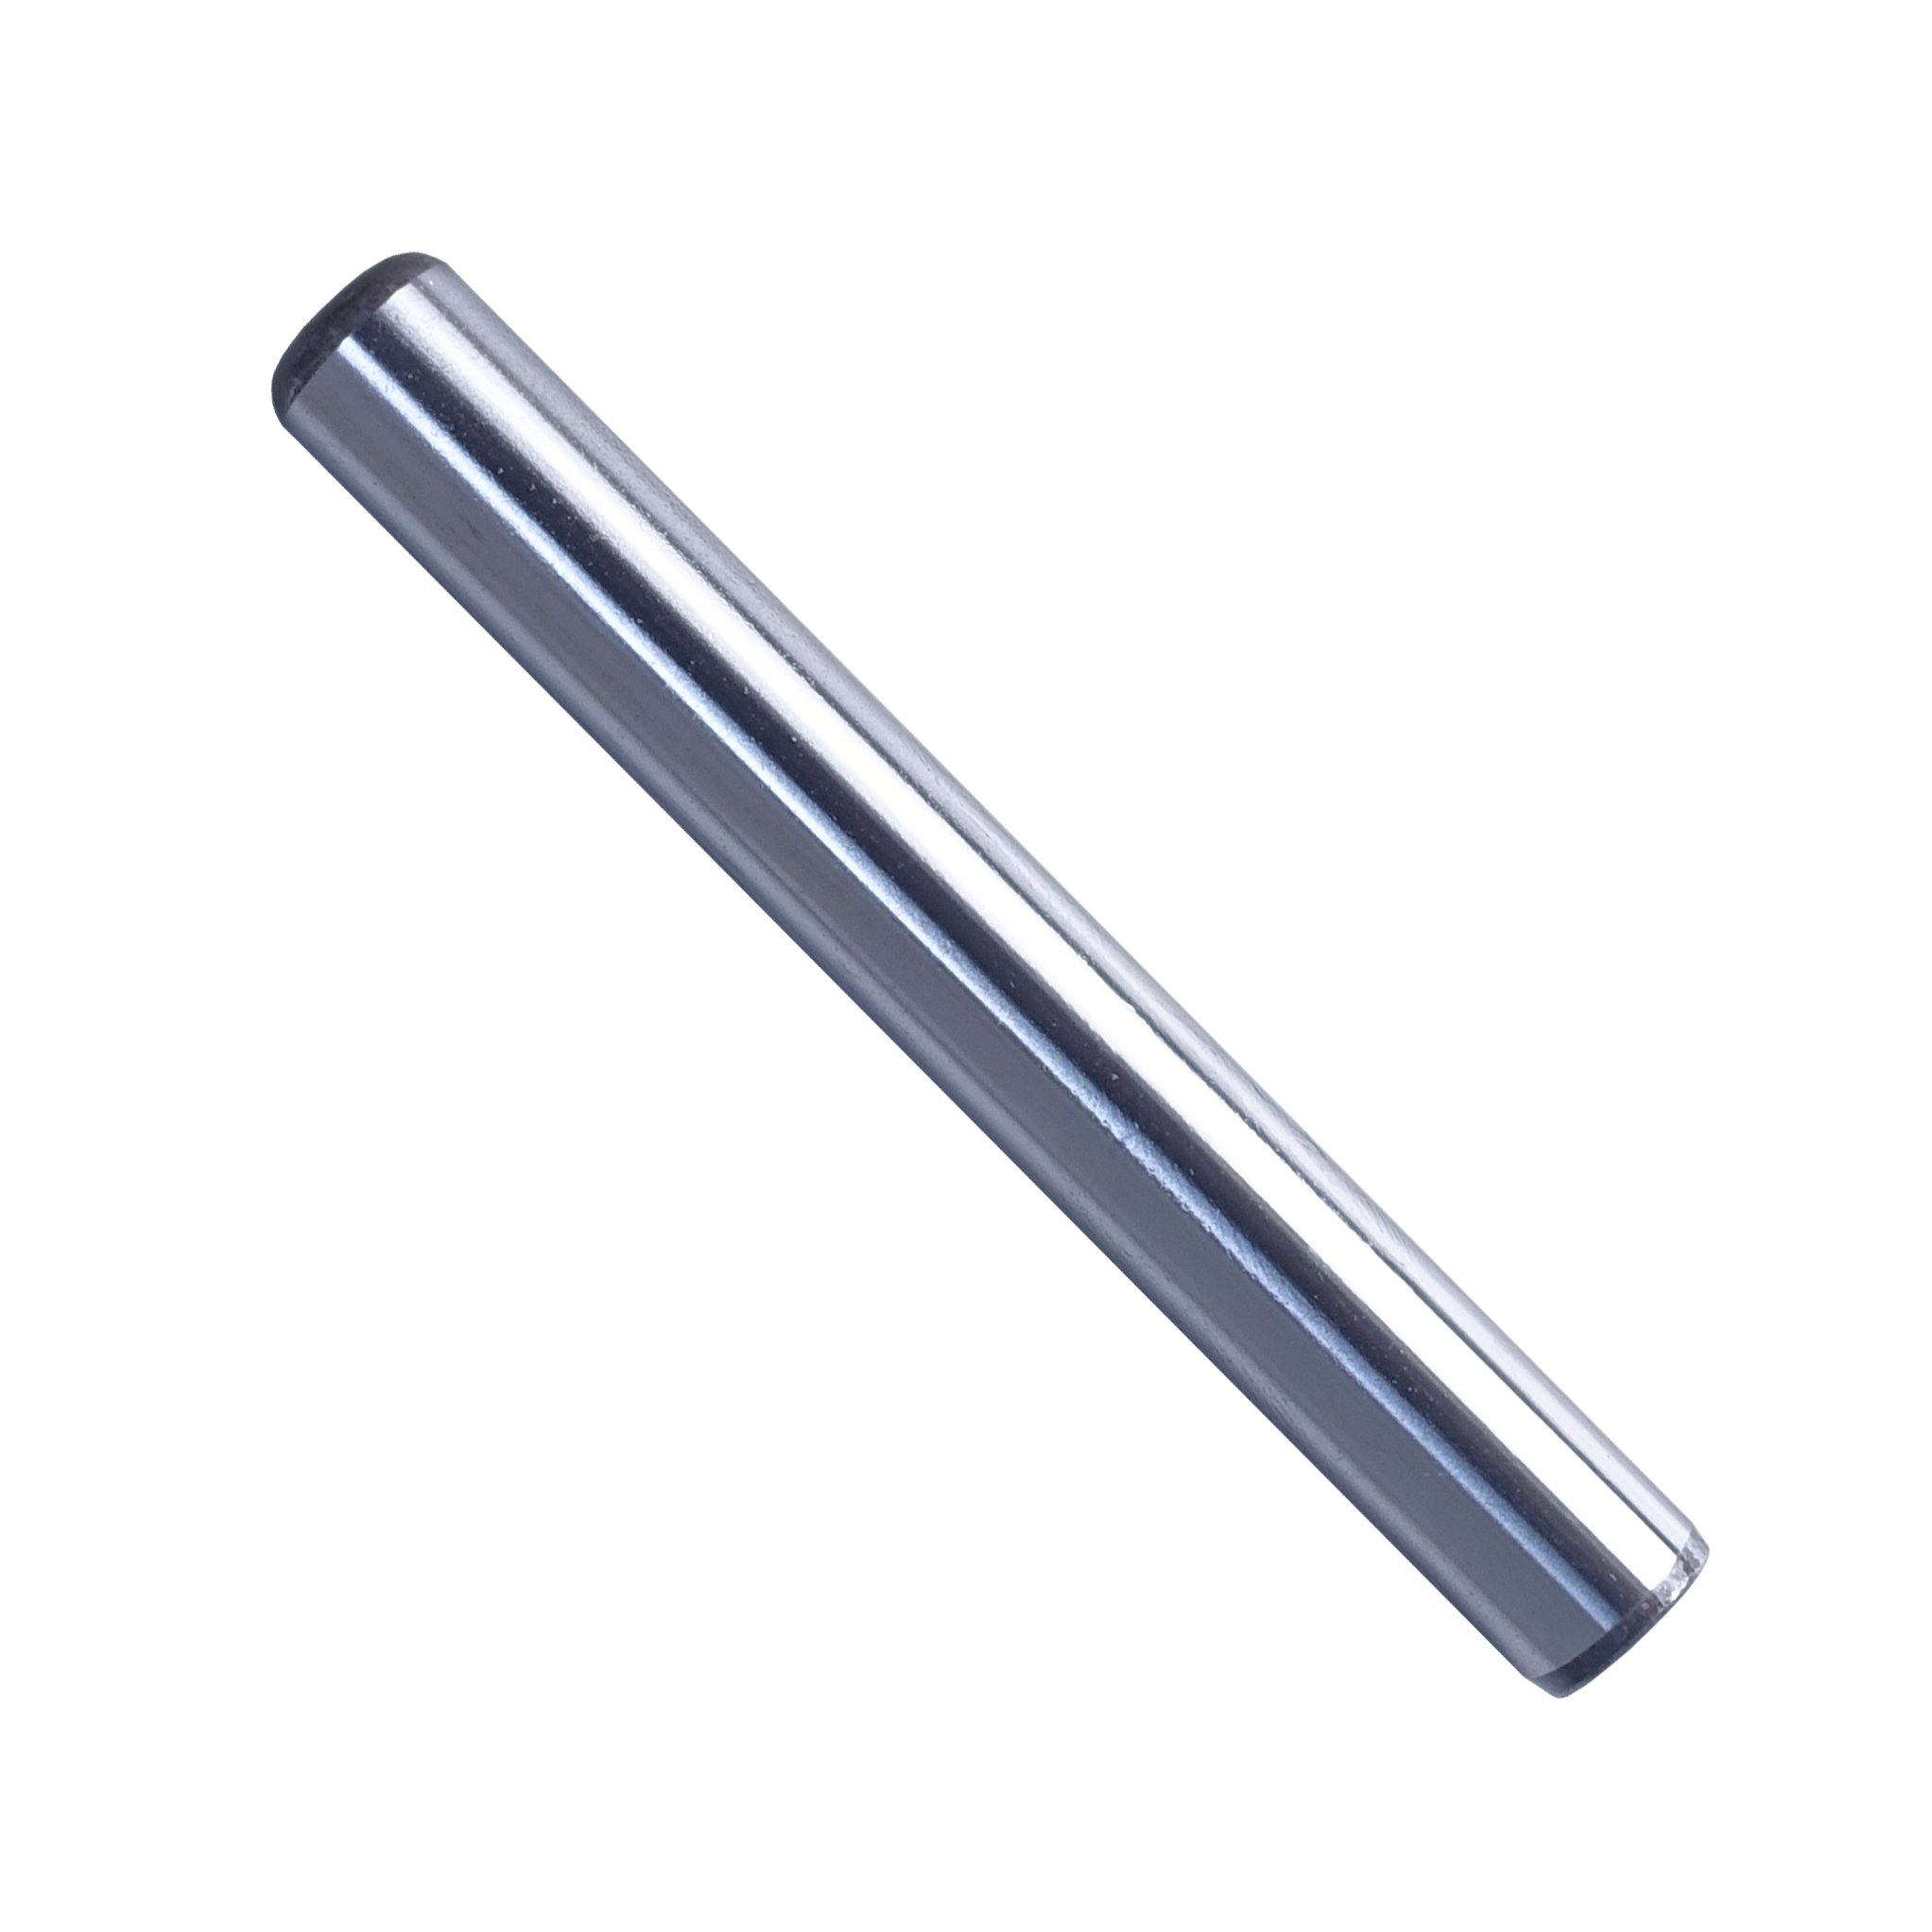 3/8 x 3'' Dowel Pins, Alloy Steel, Pack of 4